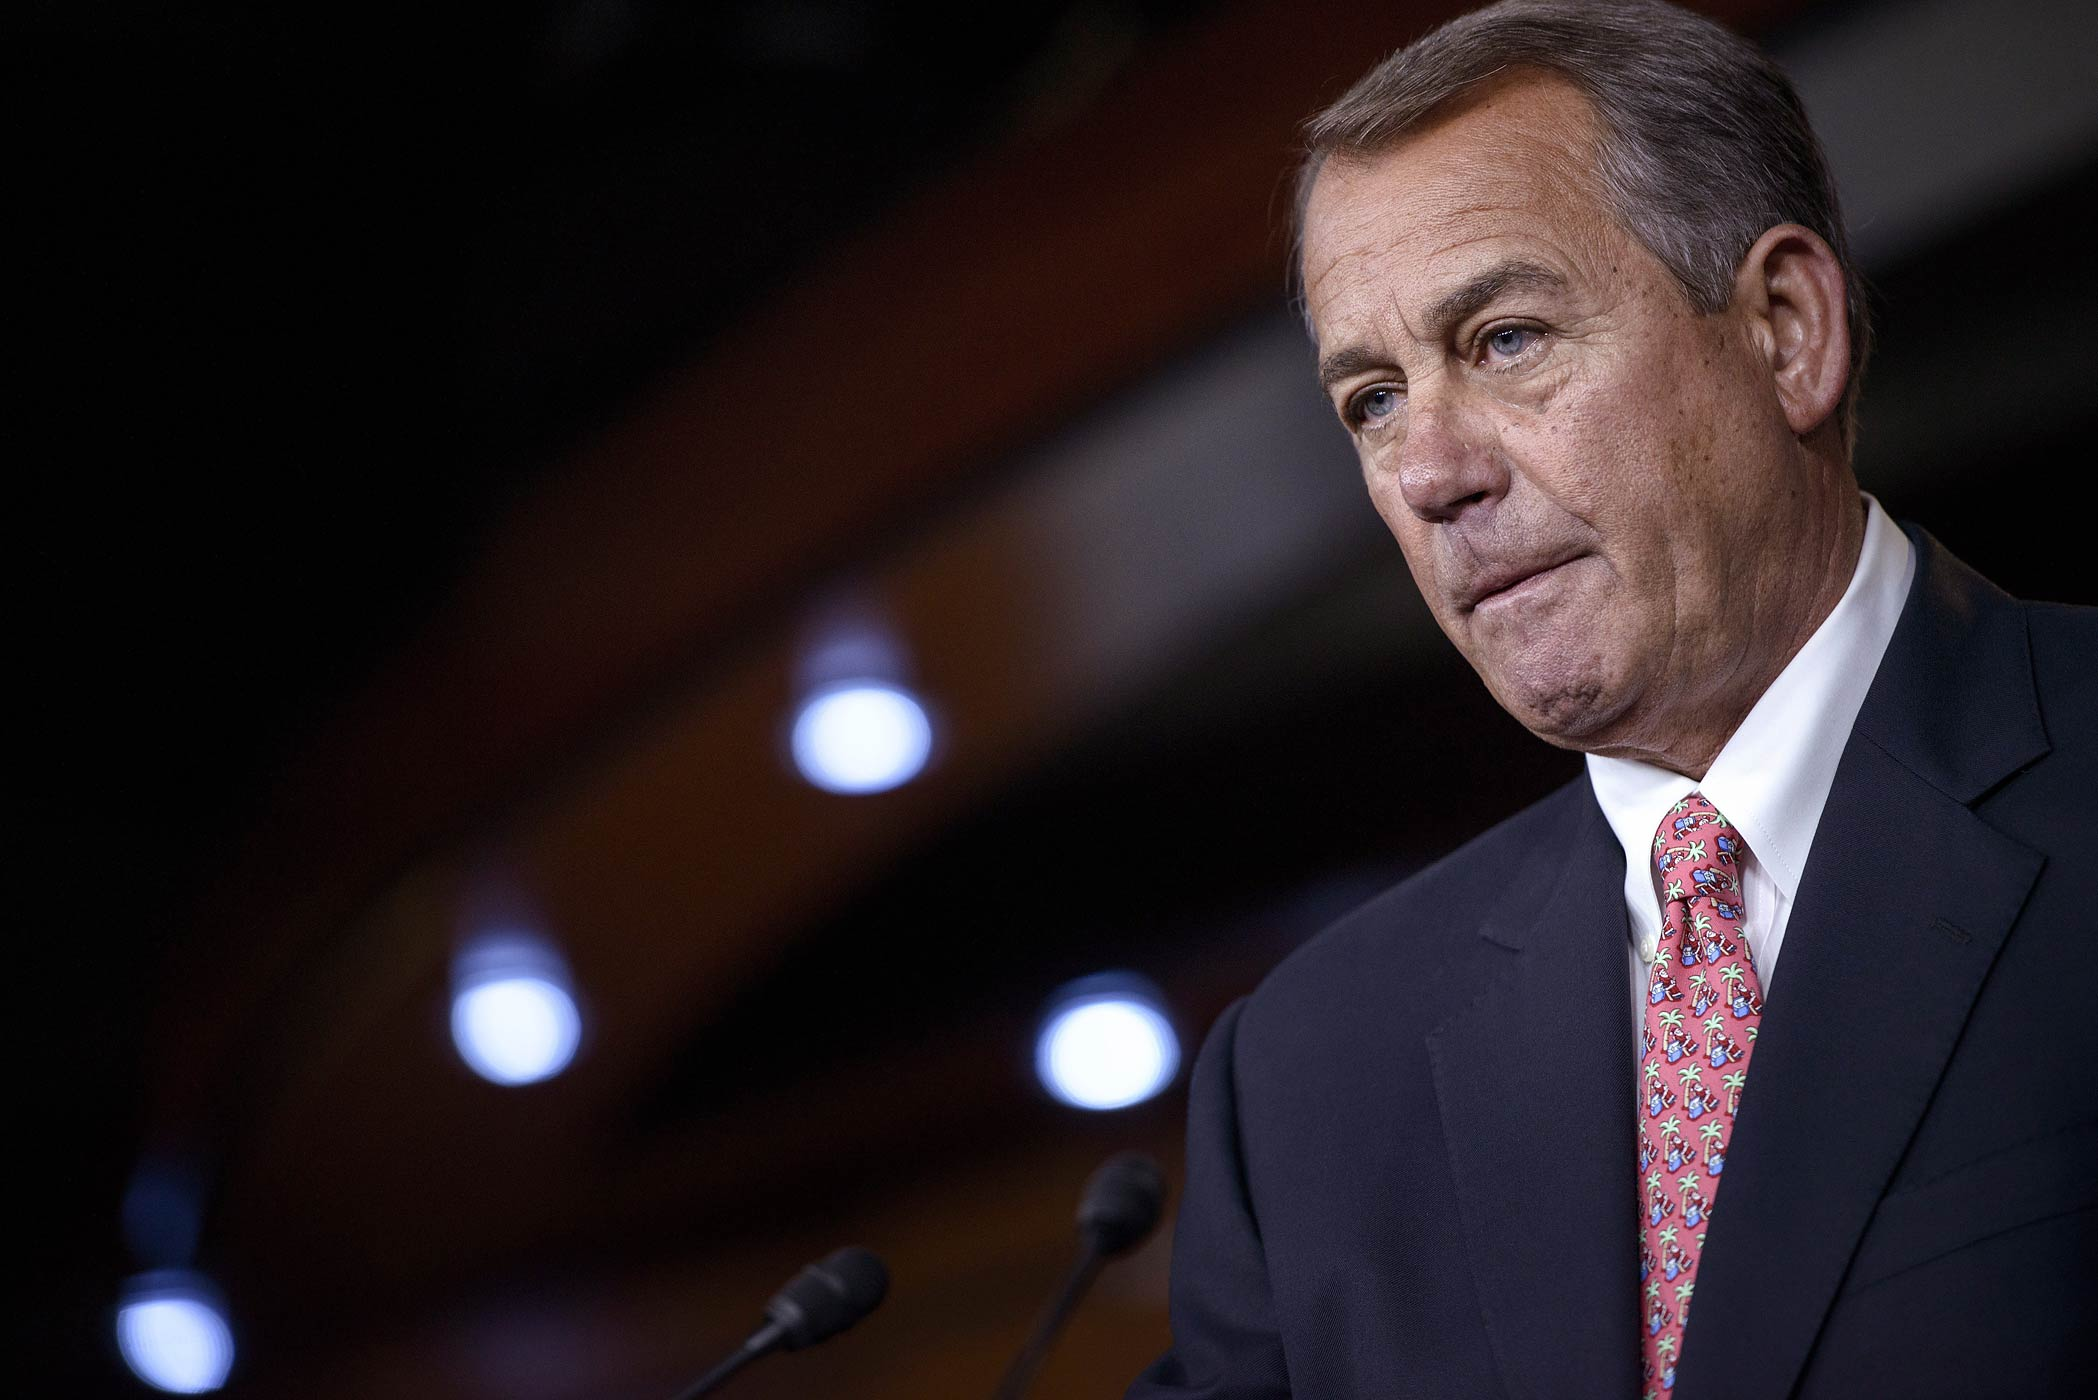 Speaker of the House John Boehner attends a press conference on Capitol Hill on December 11, 2014 in Washington, D.C.